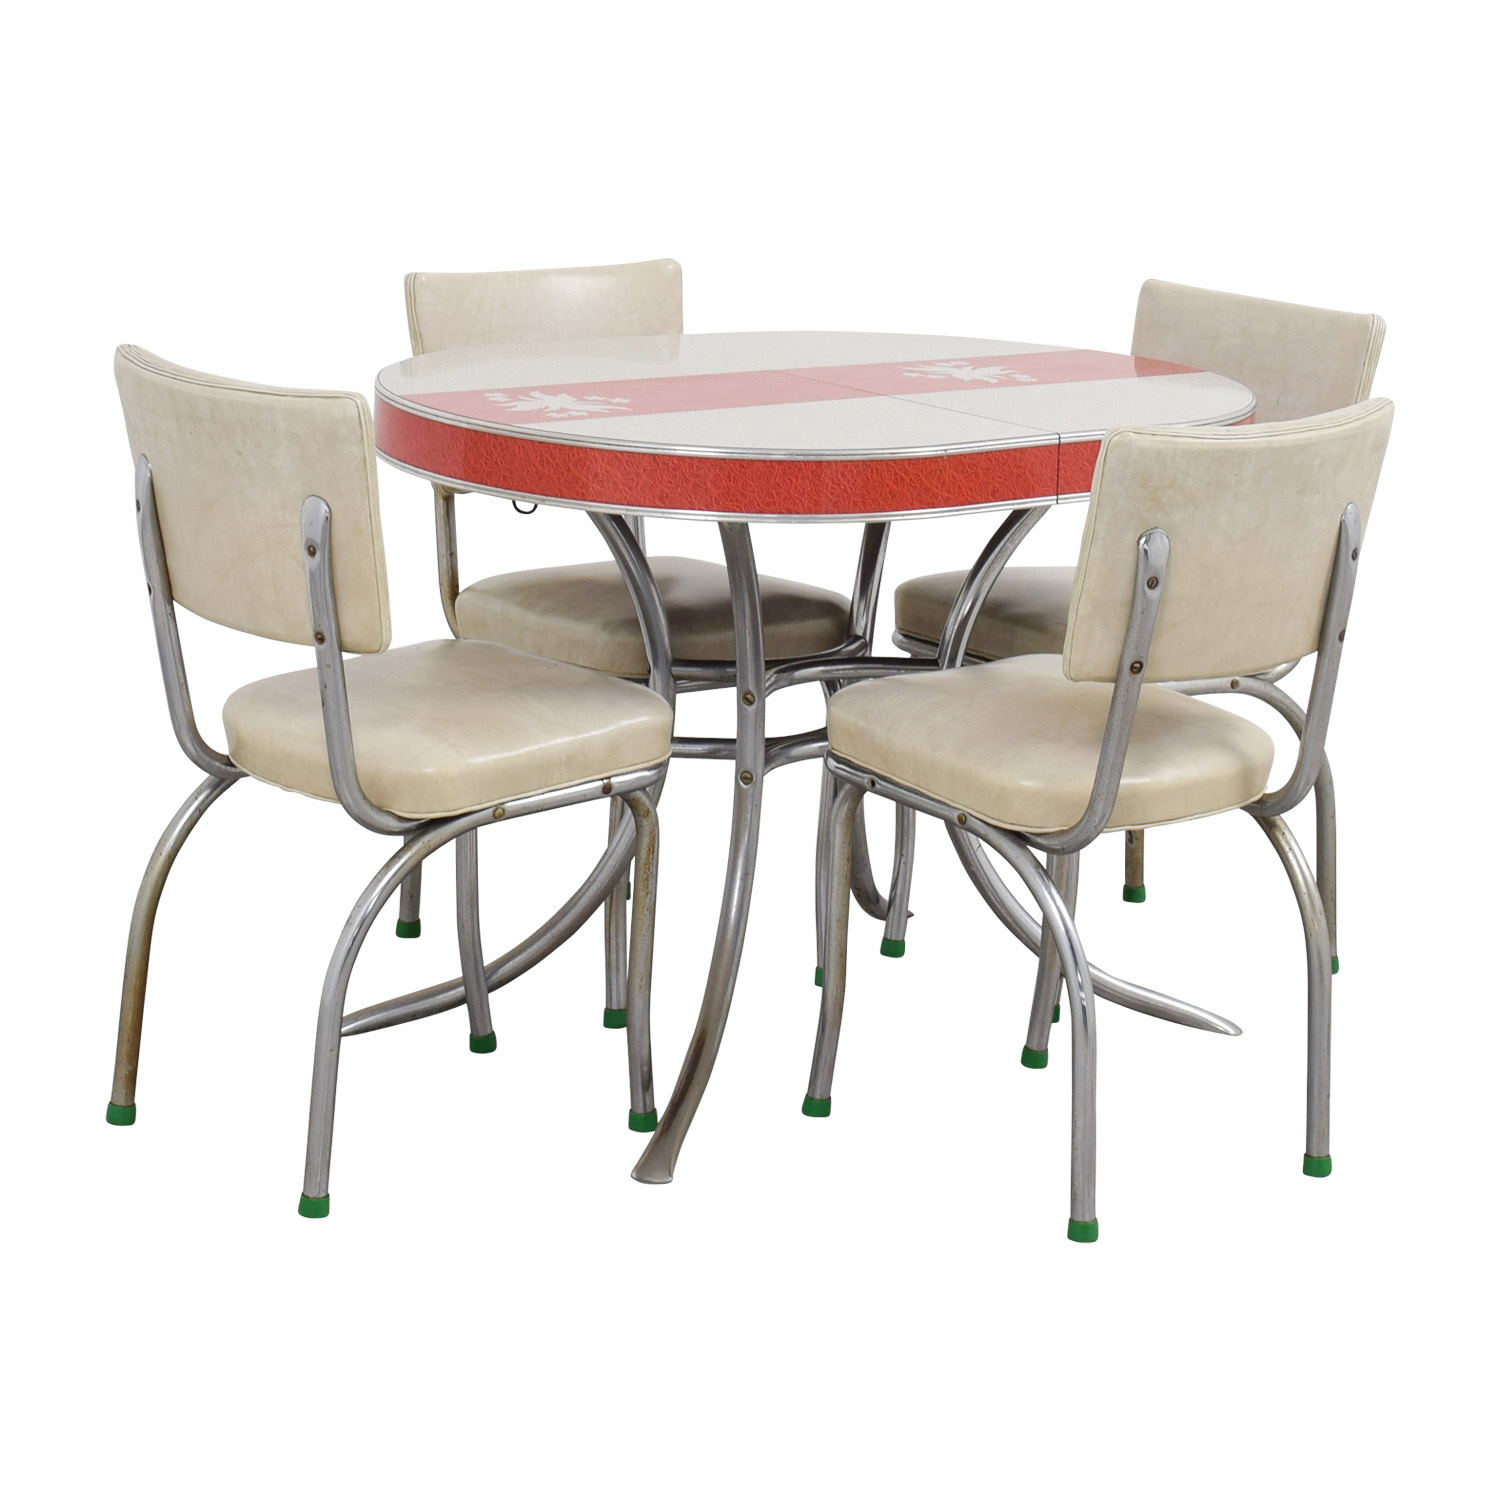 Medium image of     vintage extendable formica top aluminum kitchen table and chairs sale